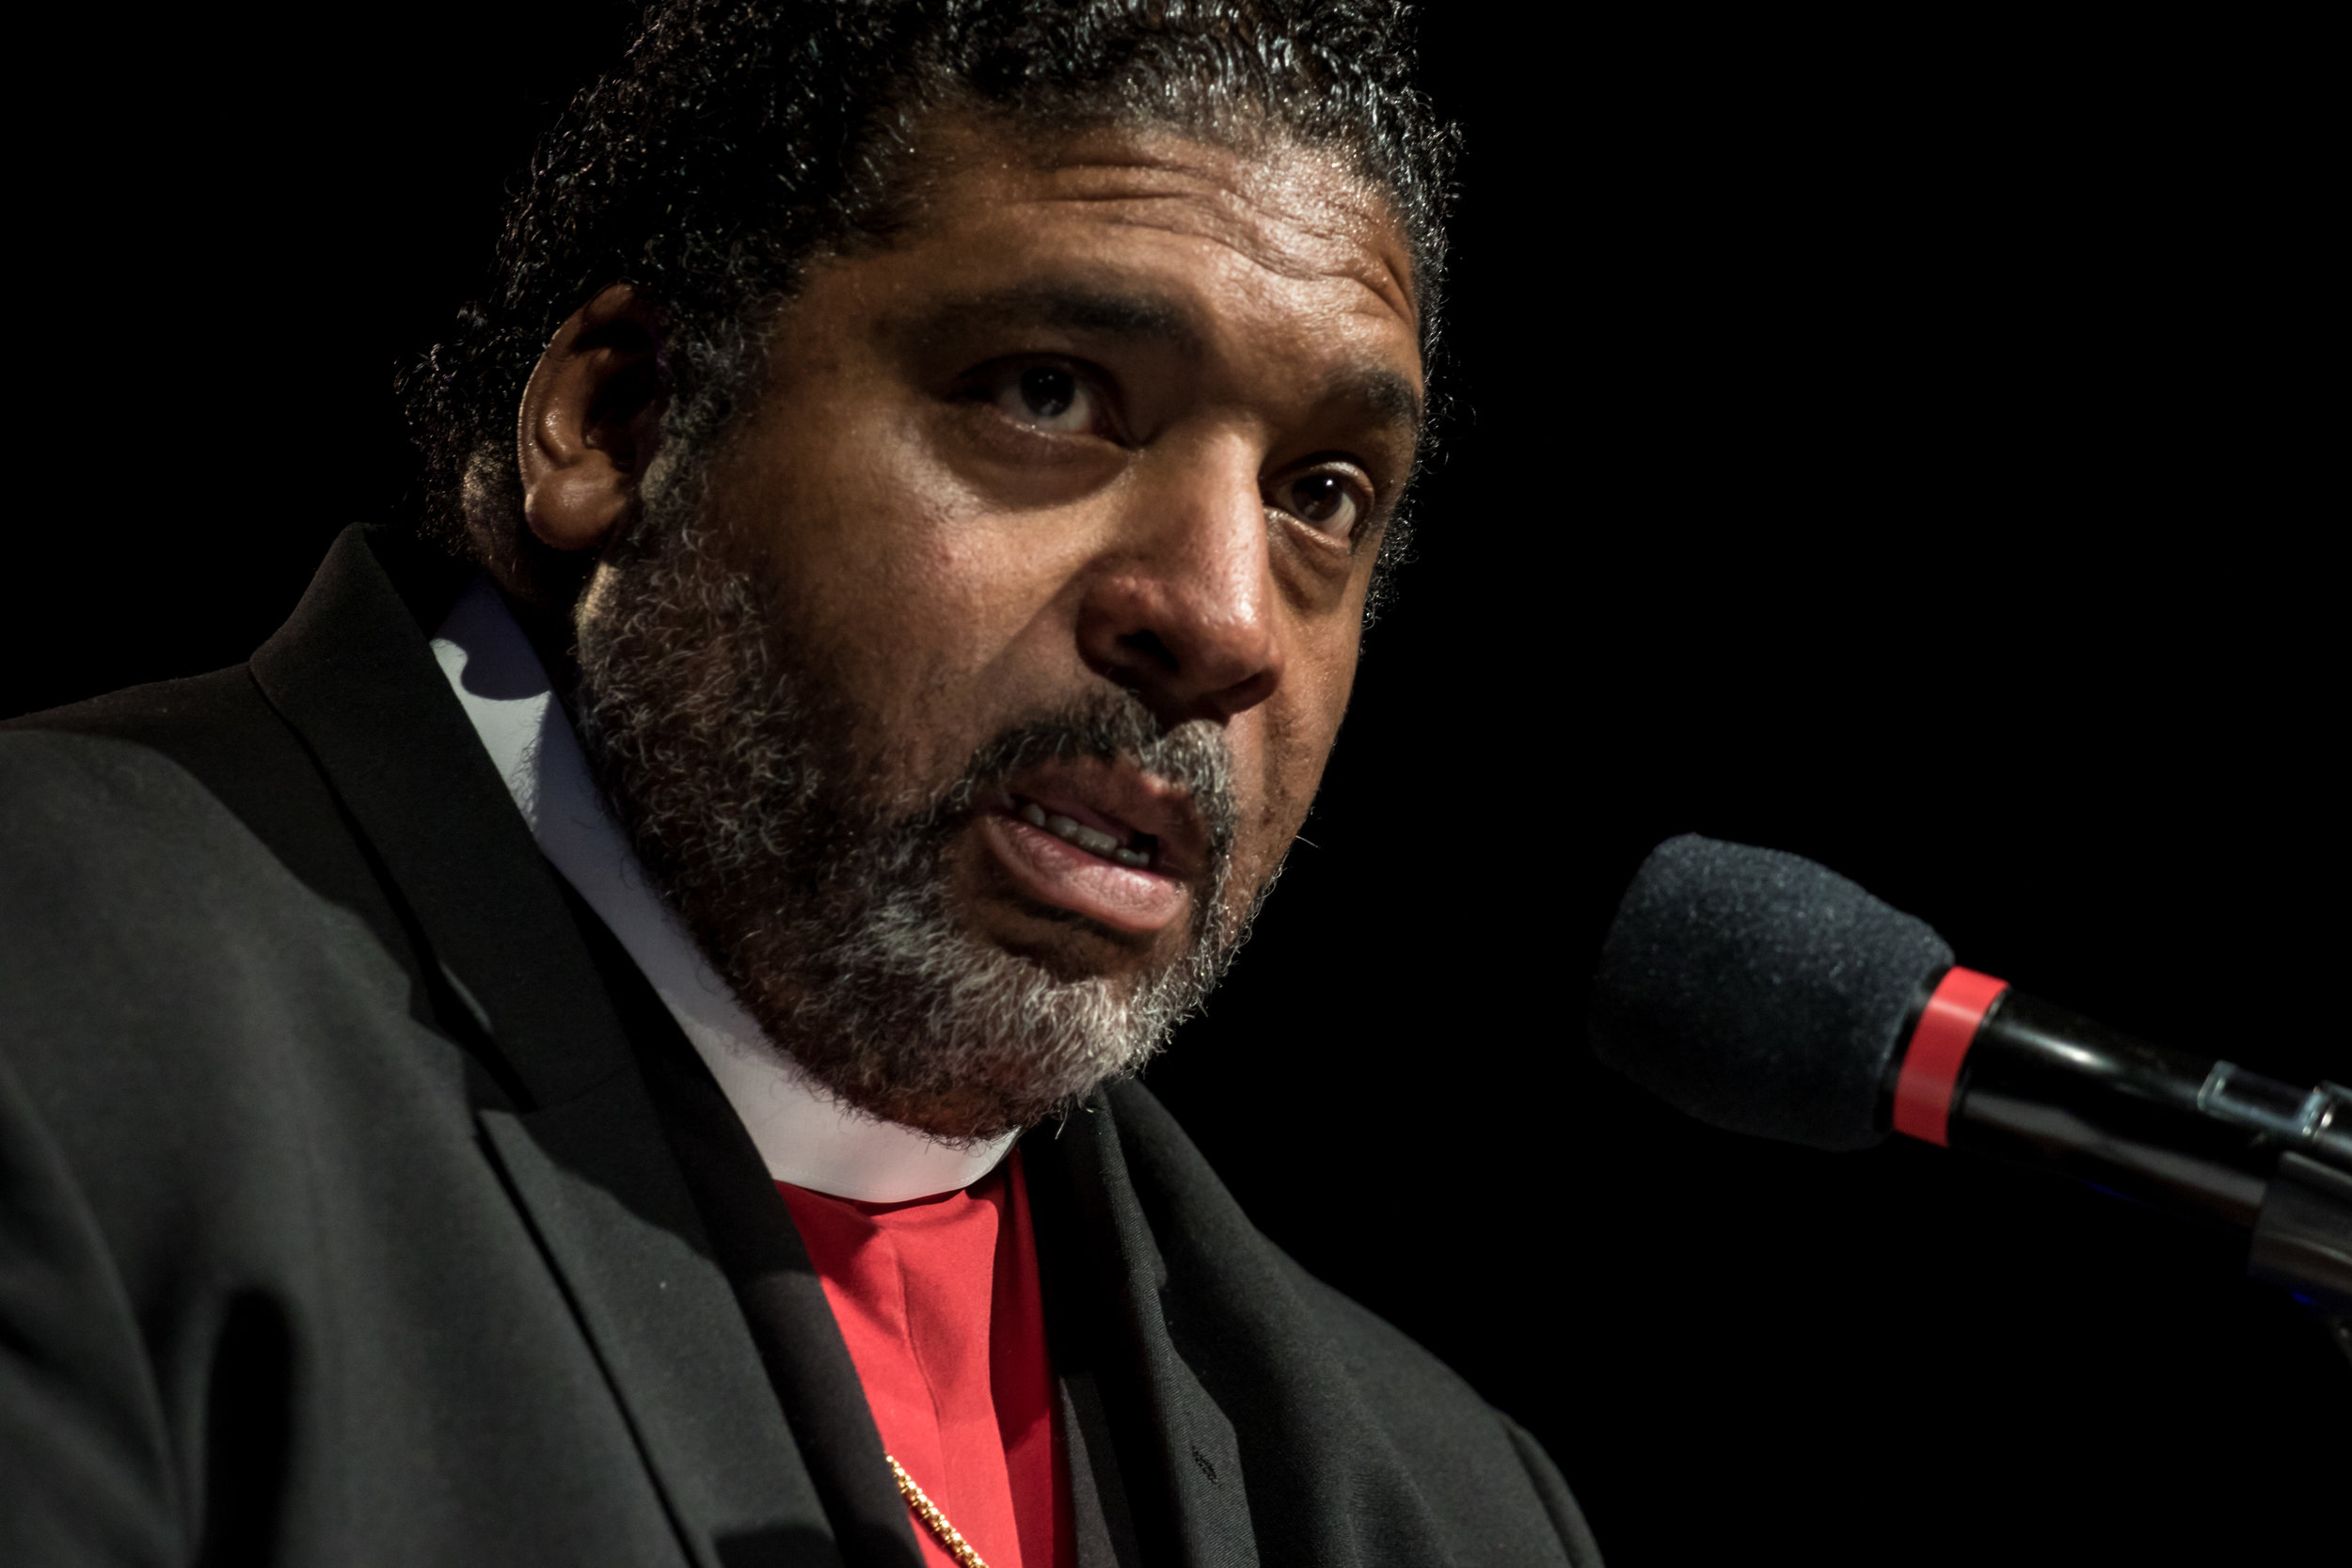 Rev. Dr. William Barber